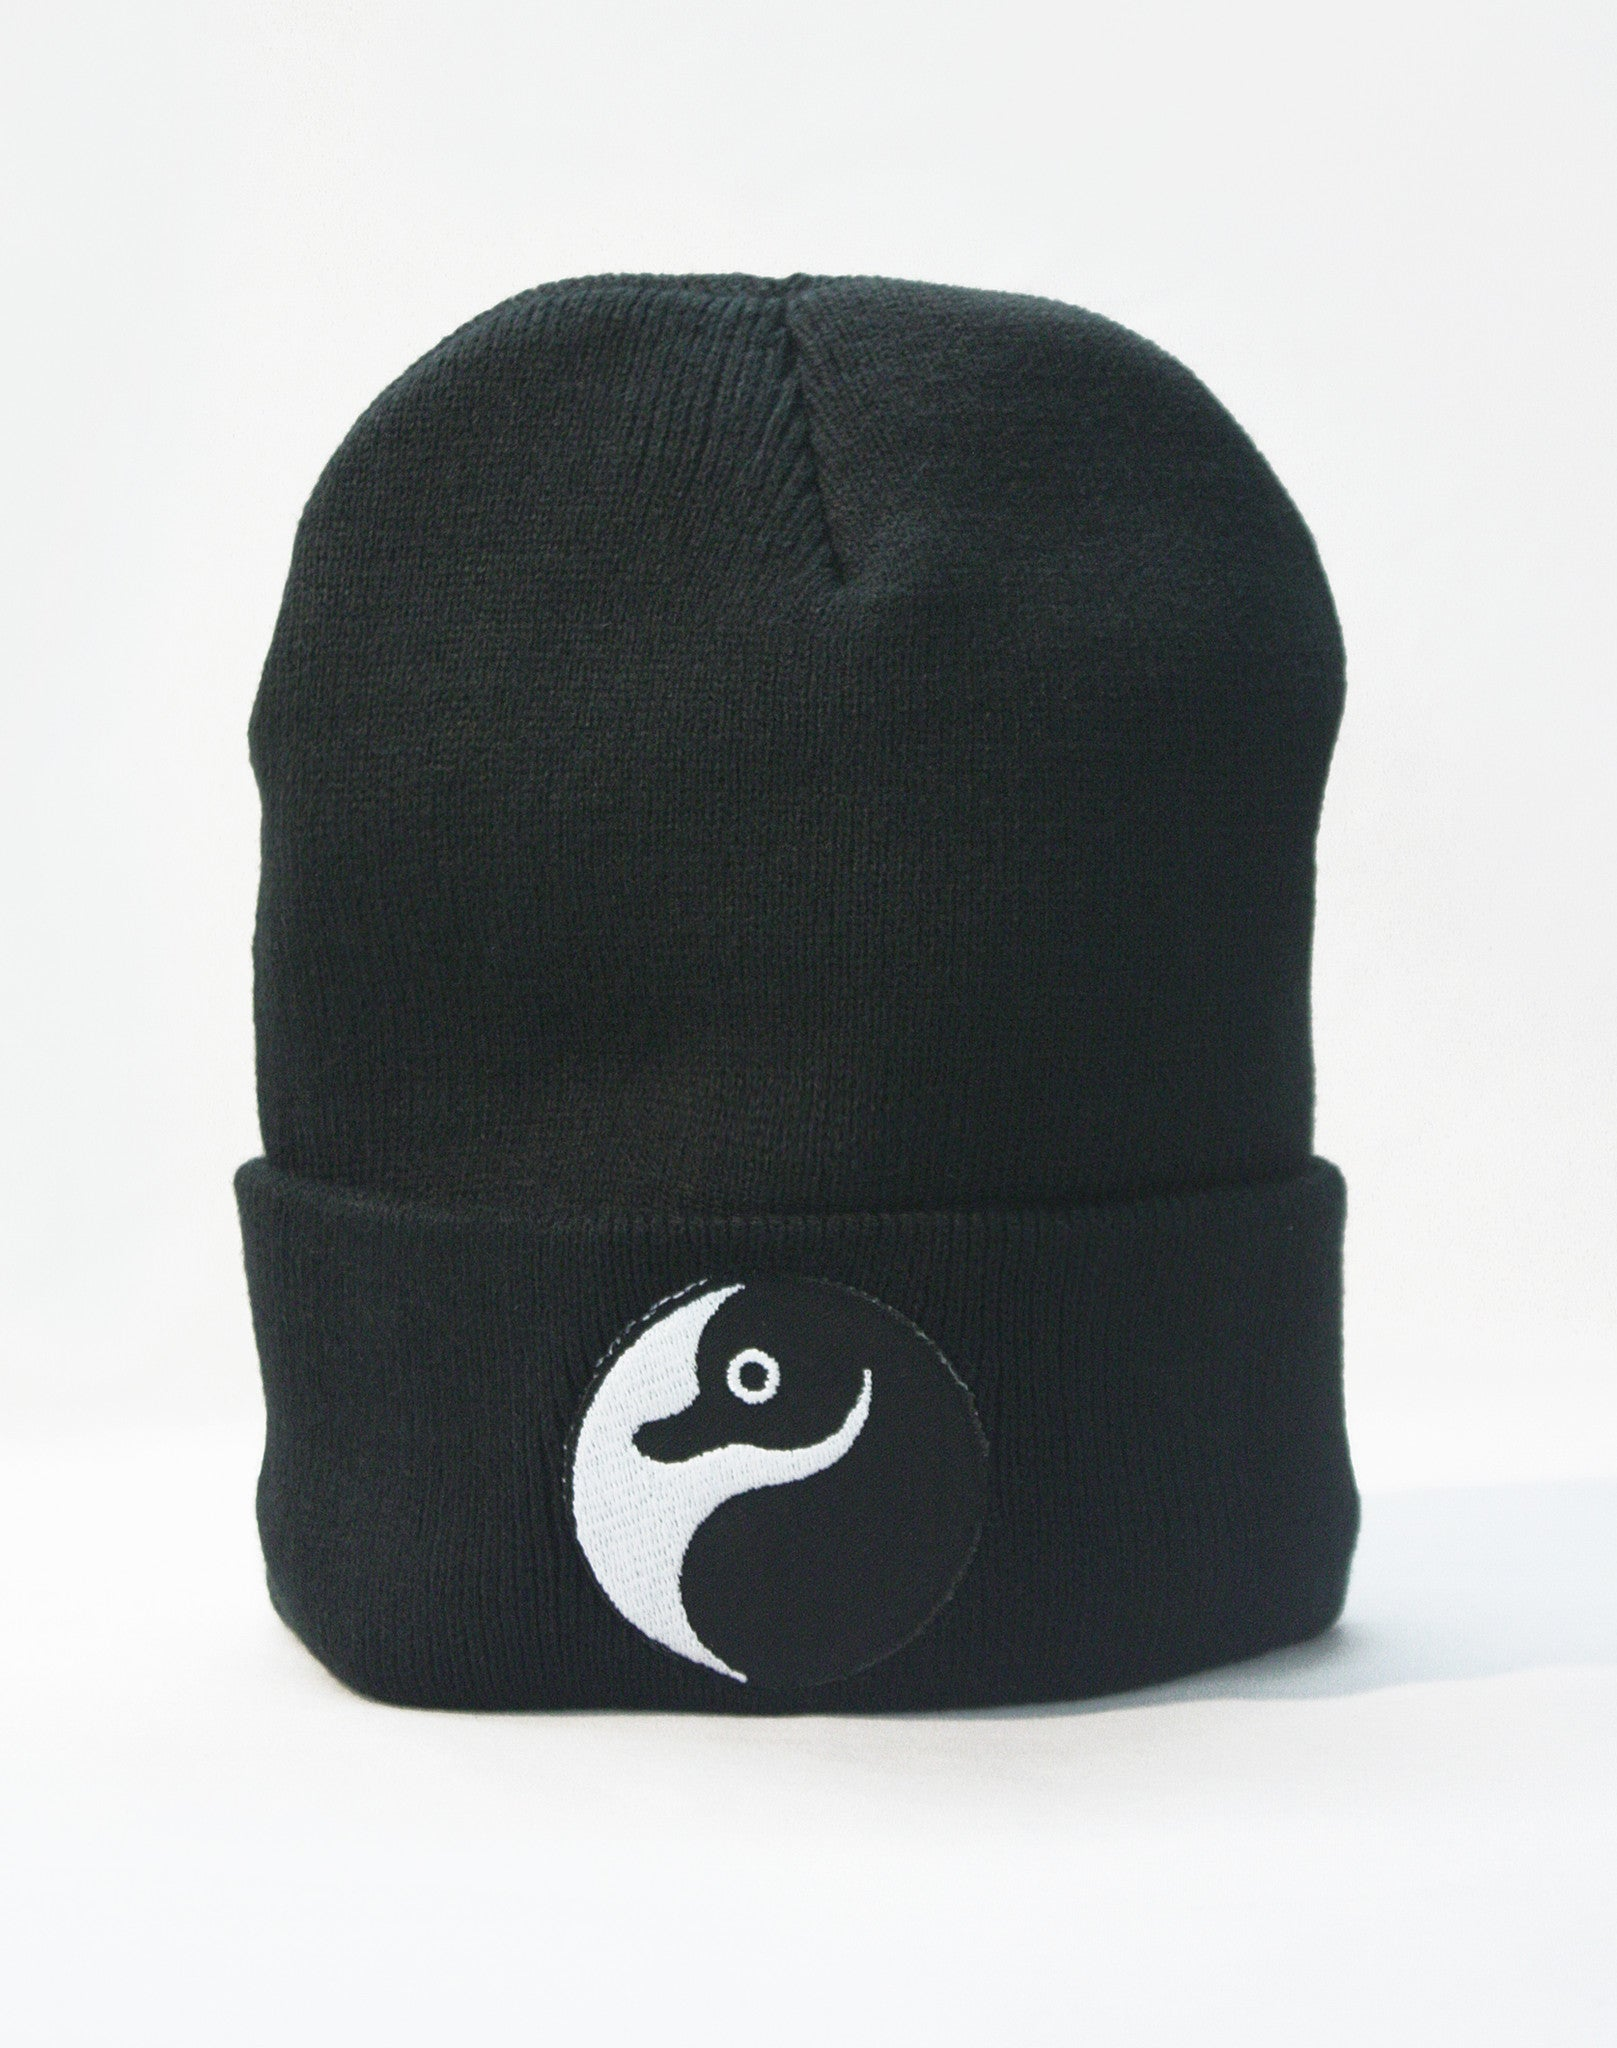 Platypus Independent Clothing Ying Yang Patch Beanie Hat